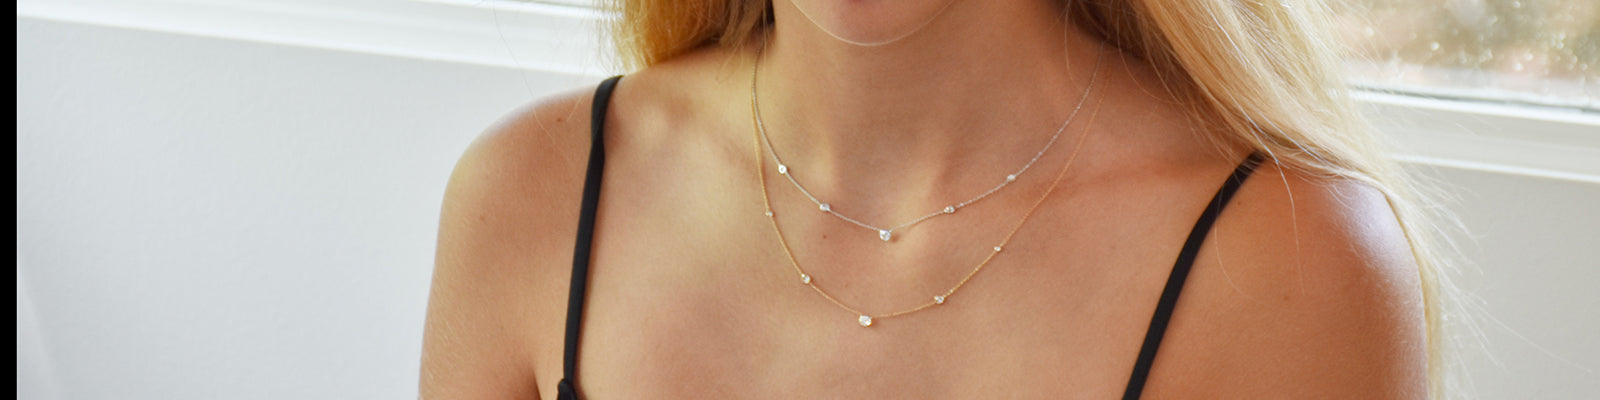 Initial Necklaces: A Charming & Timeless Accessory Trend